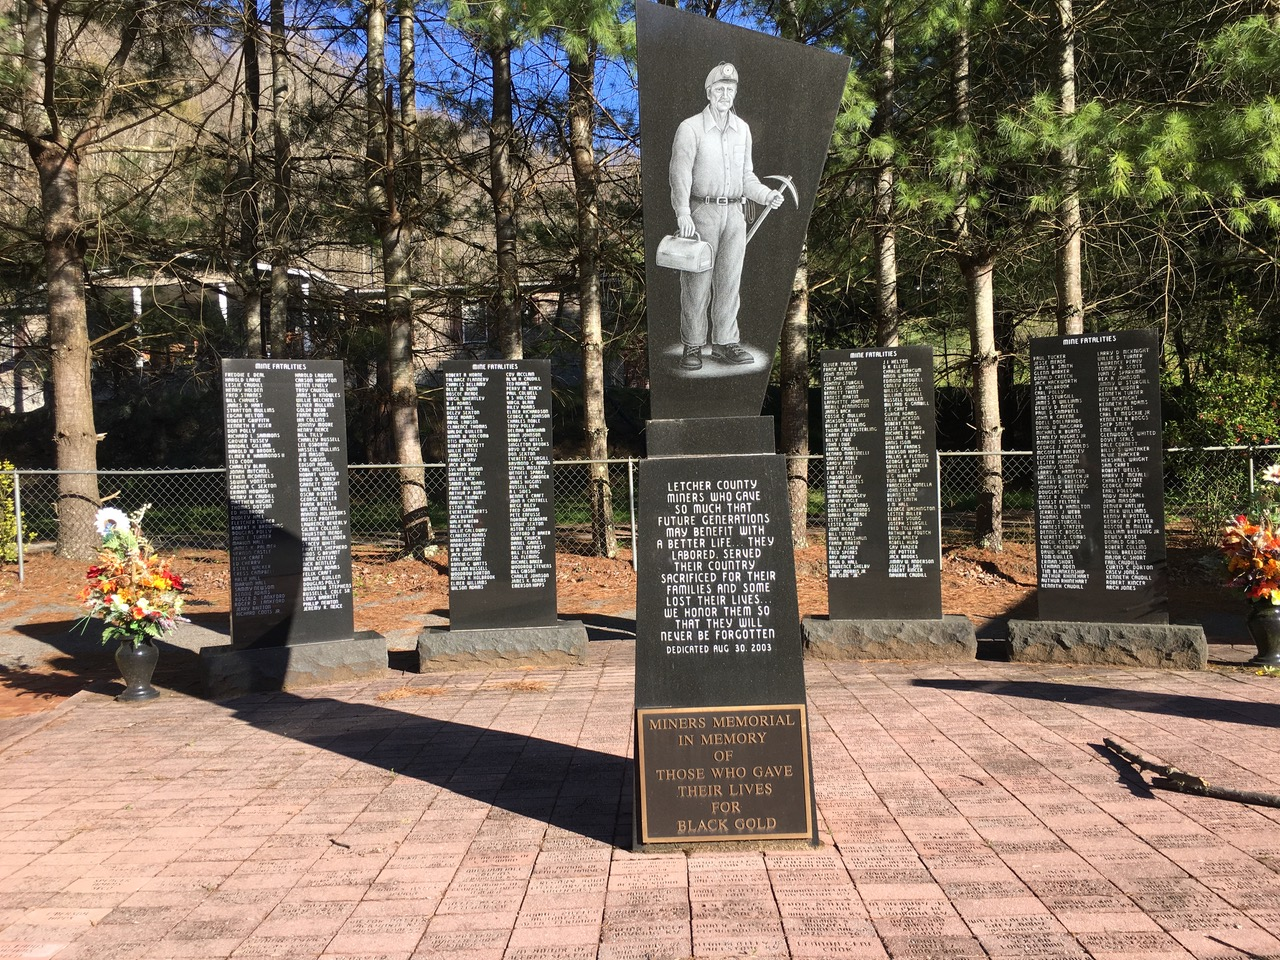 Honoring miners felled by coal